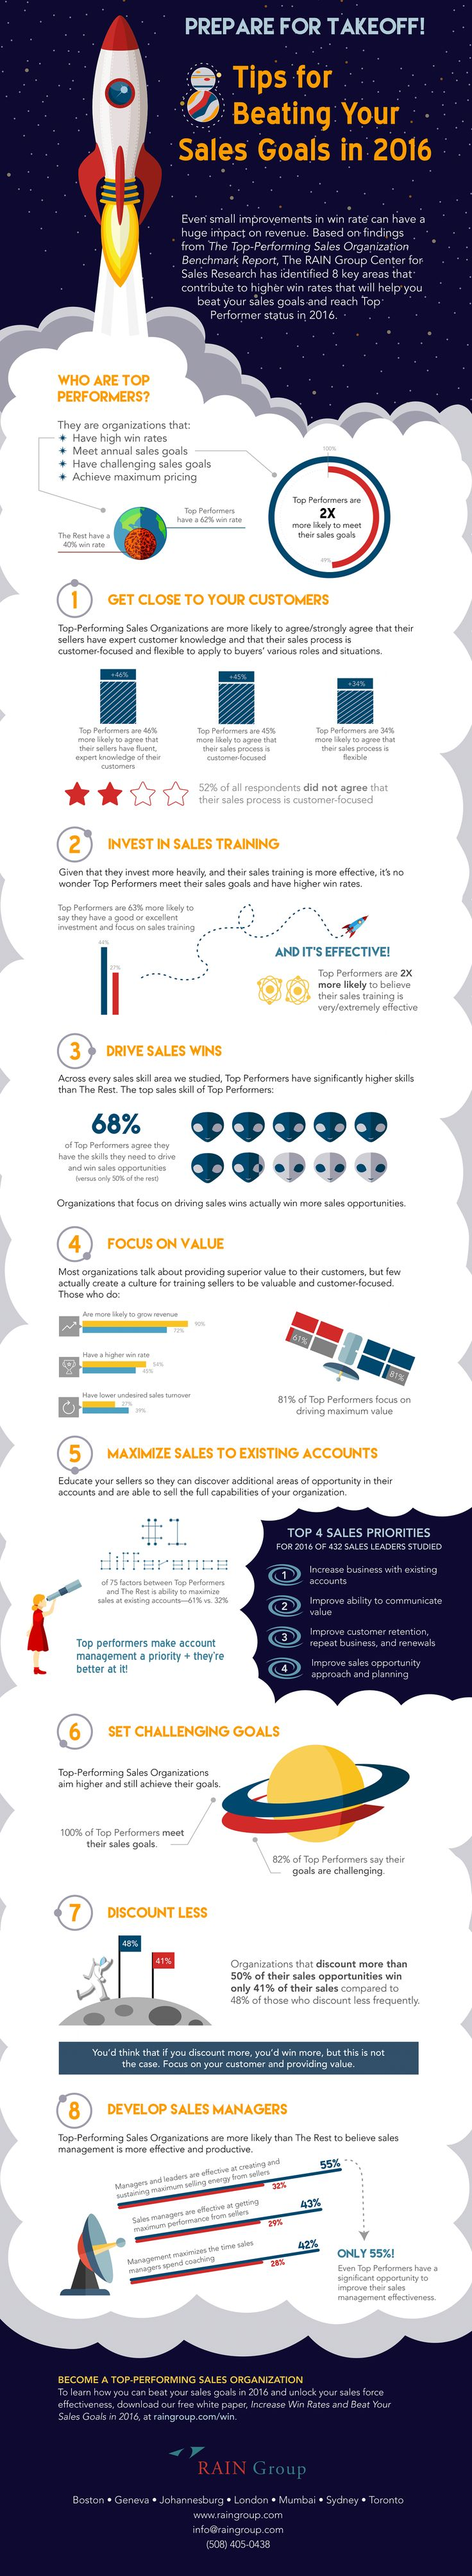 8 Tips for Beating Your Sales Goals in 2016 #Infographic ~ Visualistan